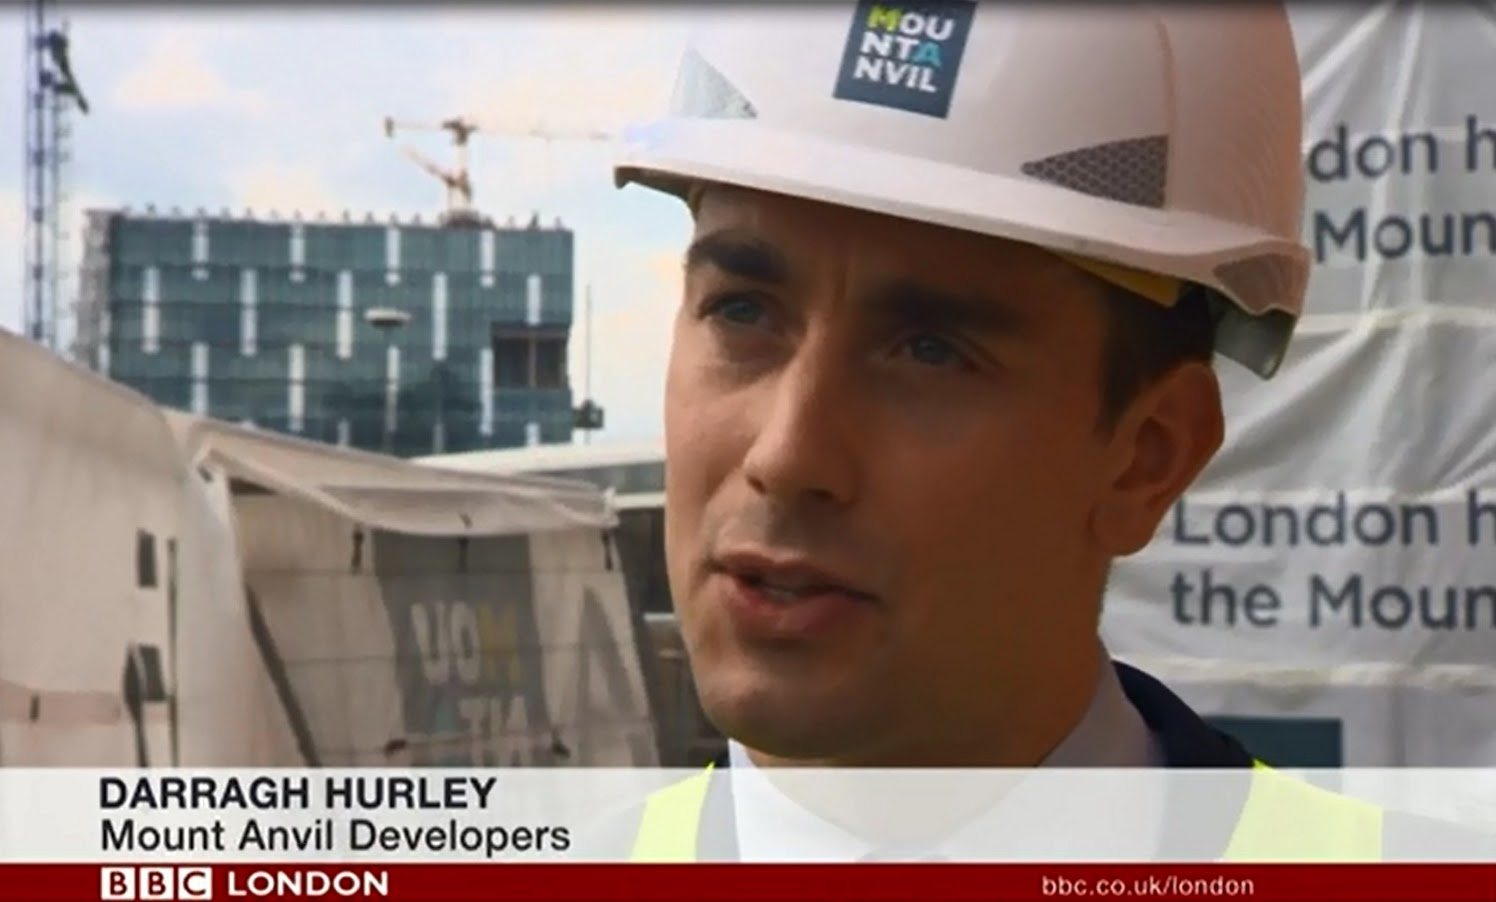 Darragh Hurley BBC News London Interview